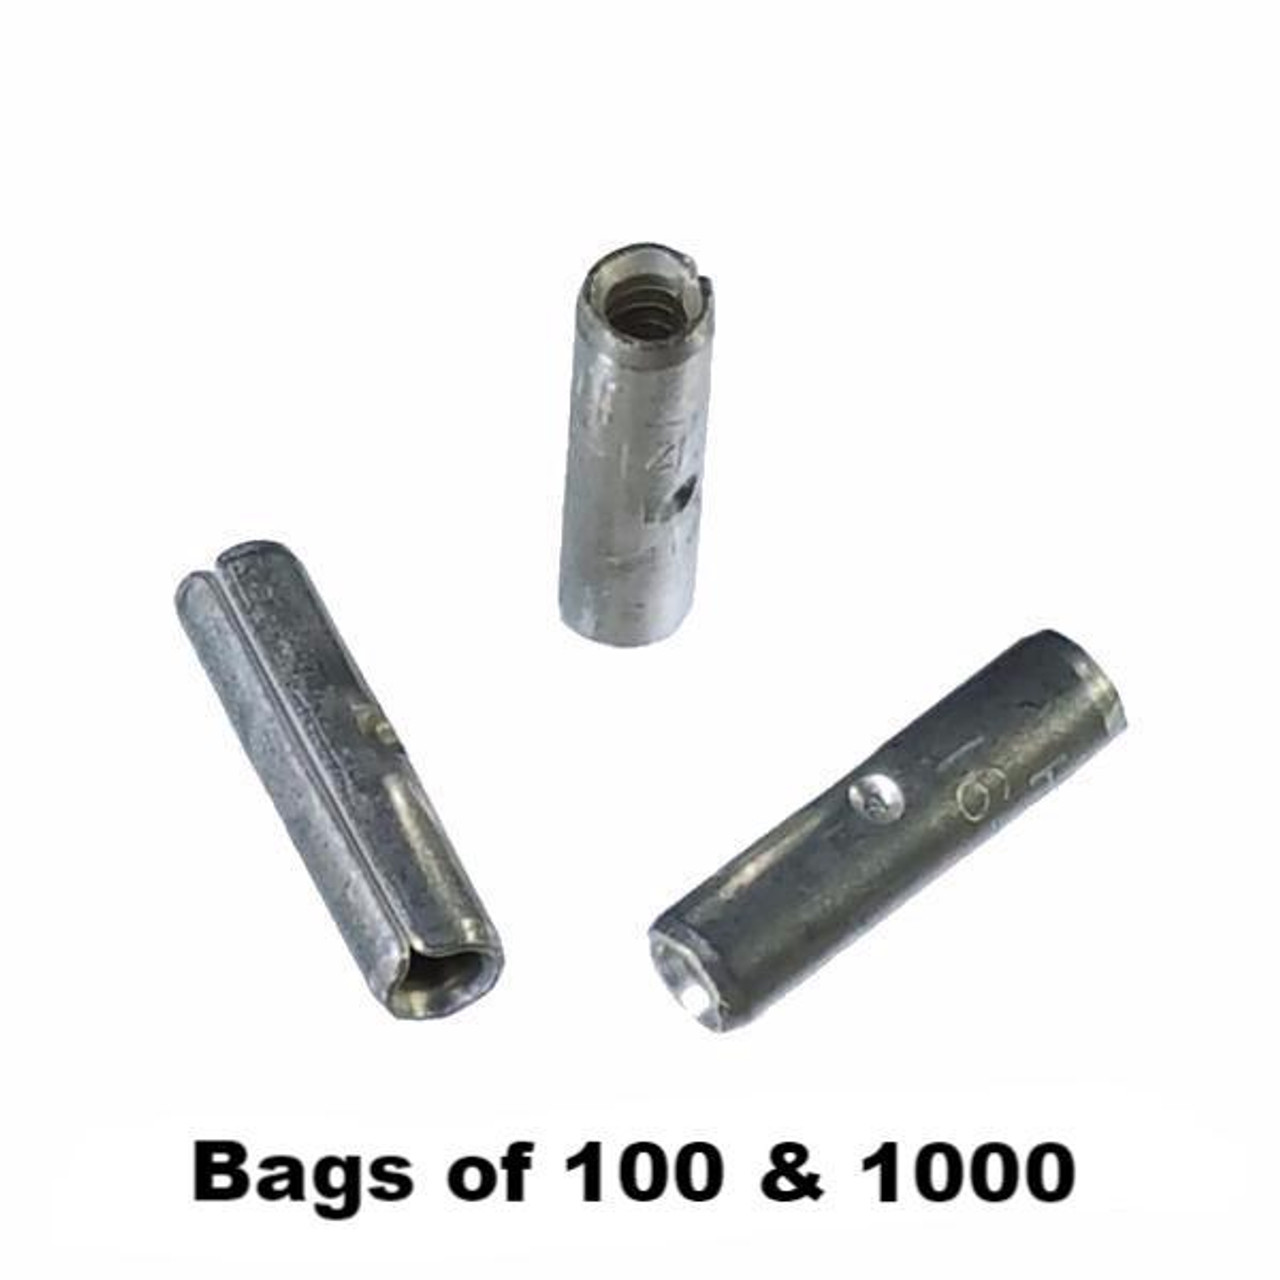 12-10 GAUGE 100 PK UNINSULATED NON INSULATED TINNED BUTT CONNECTOR TERMINAL WIRE